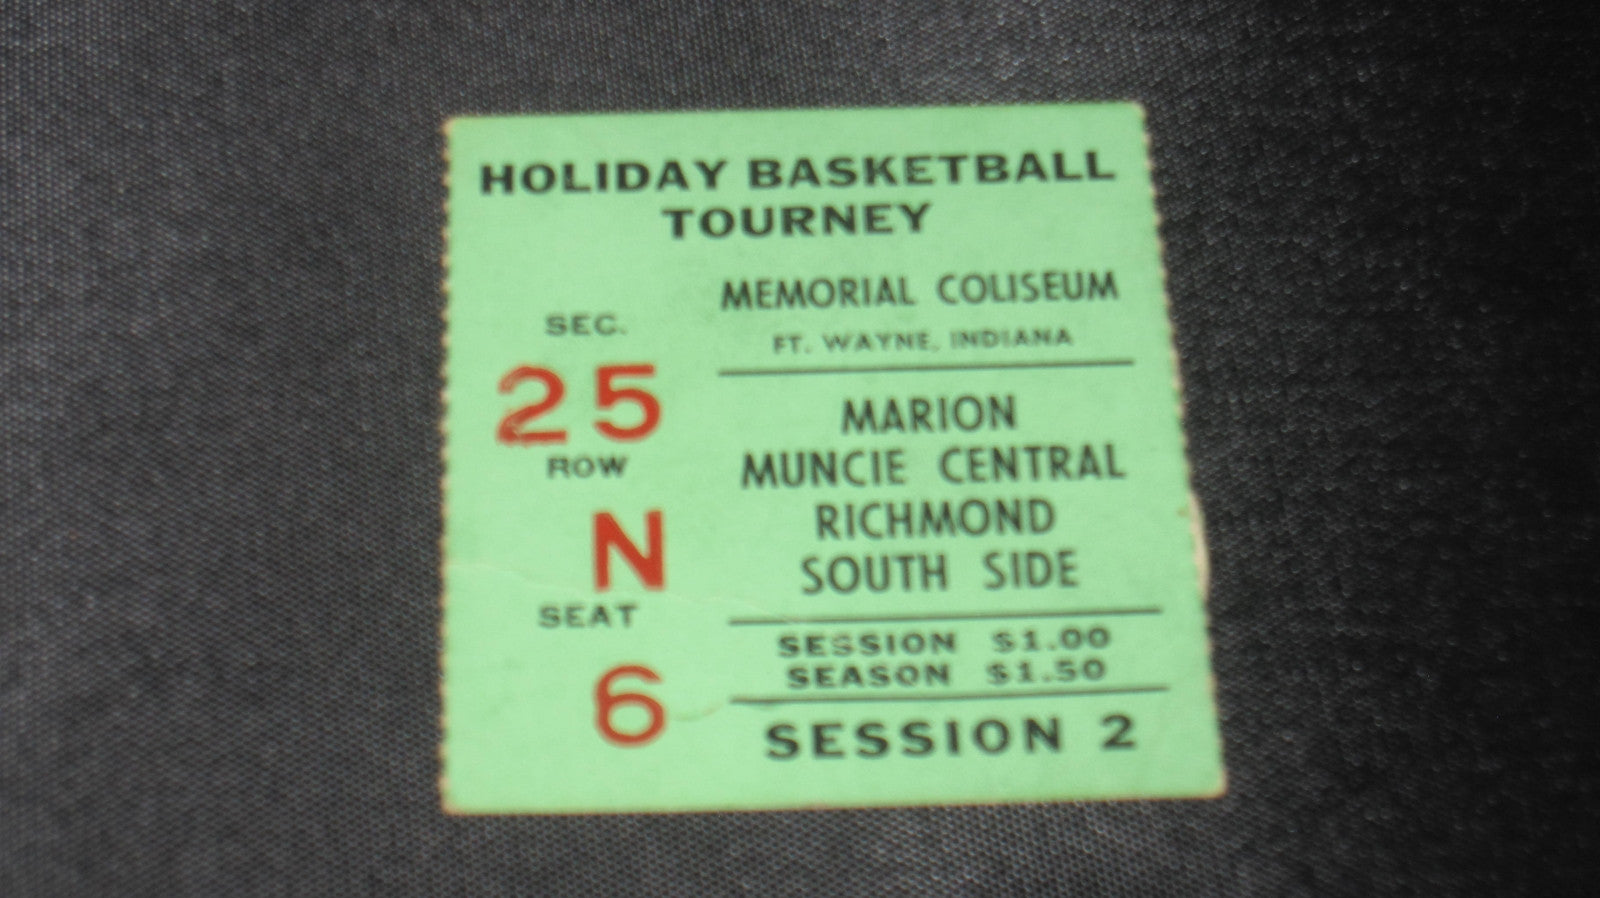 1956 Ft. Wayne Indiana High School Basketball Holiday Tournament Ticket Stub - Vintage Indy Sports